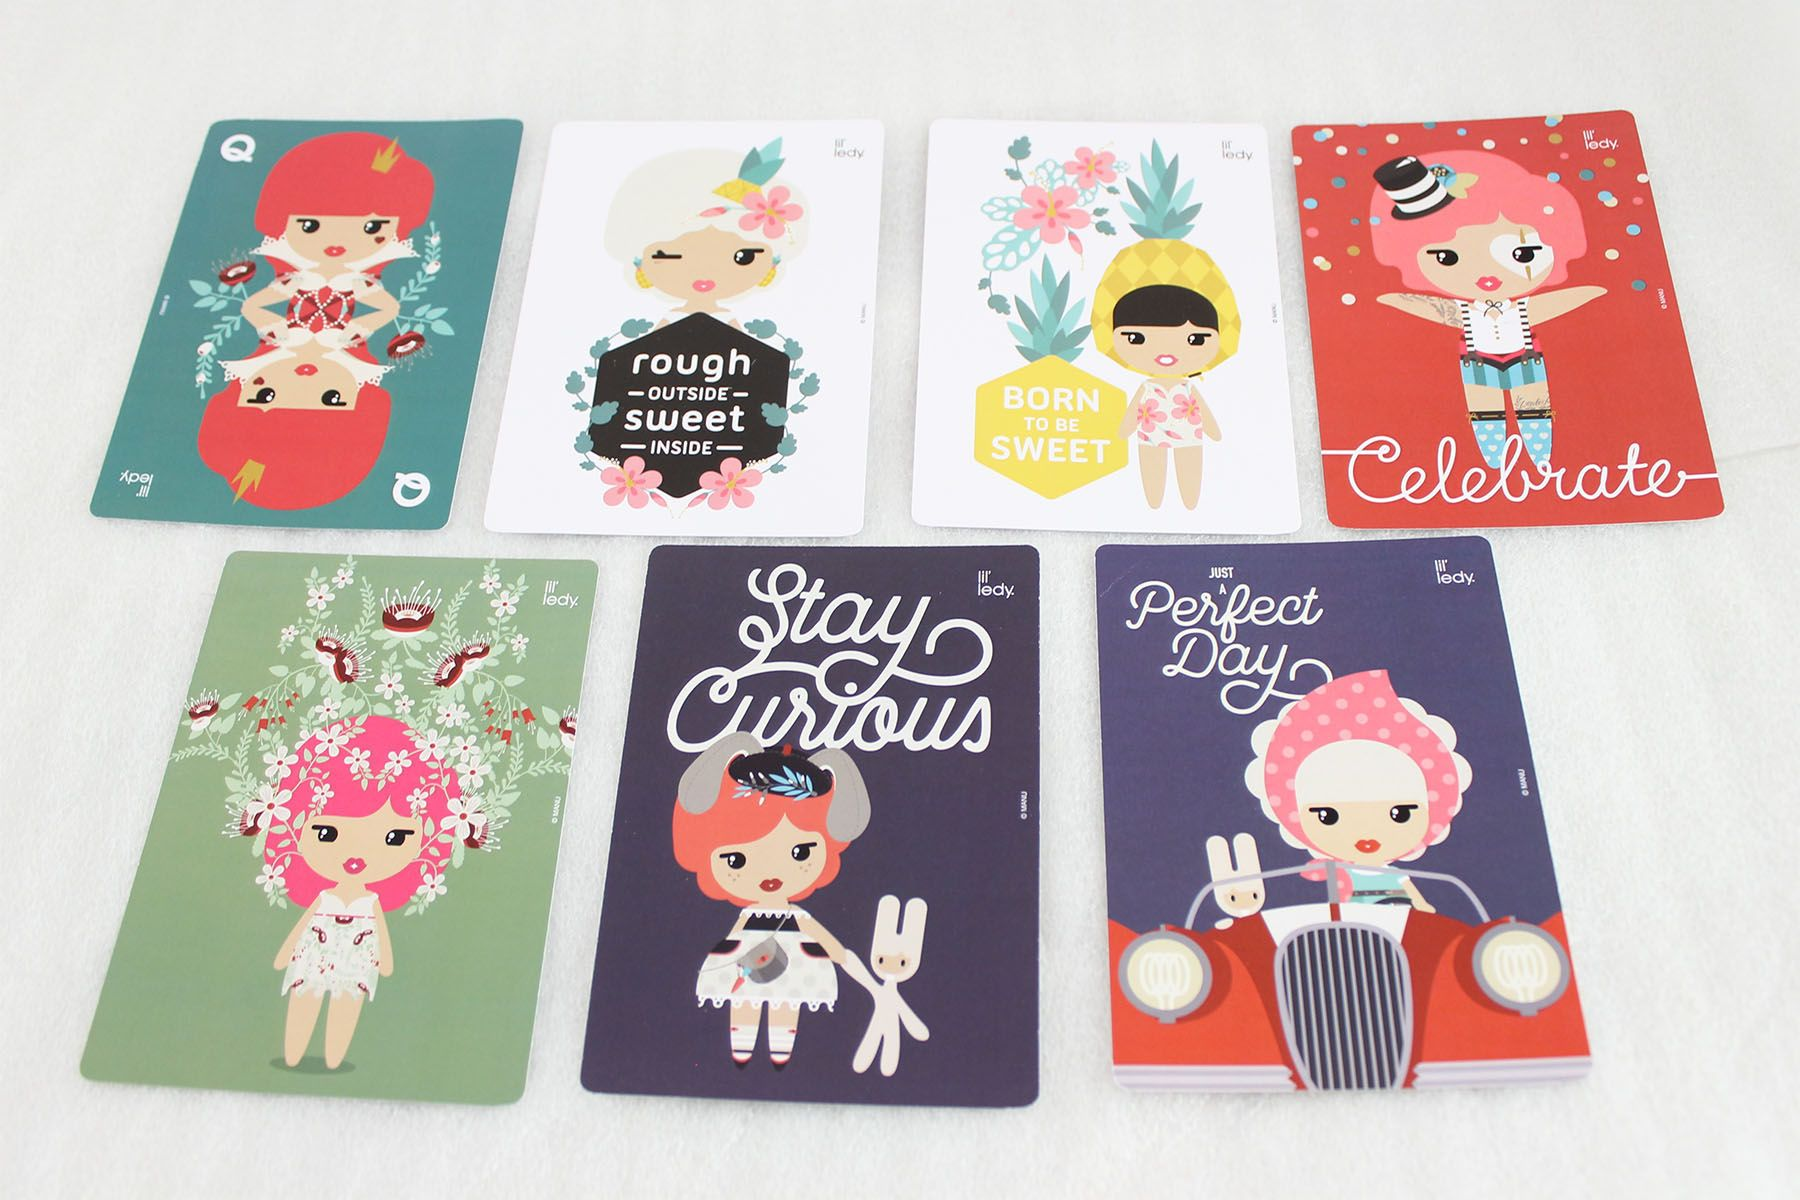 Lil'ledy stationery notebooks